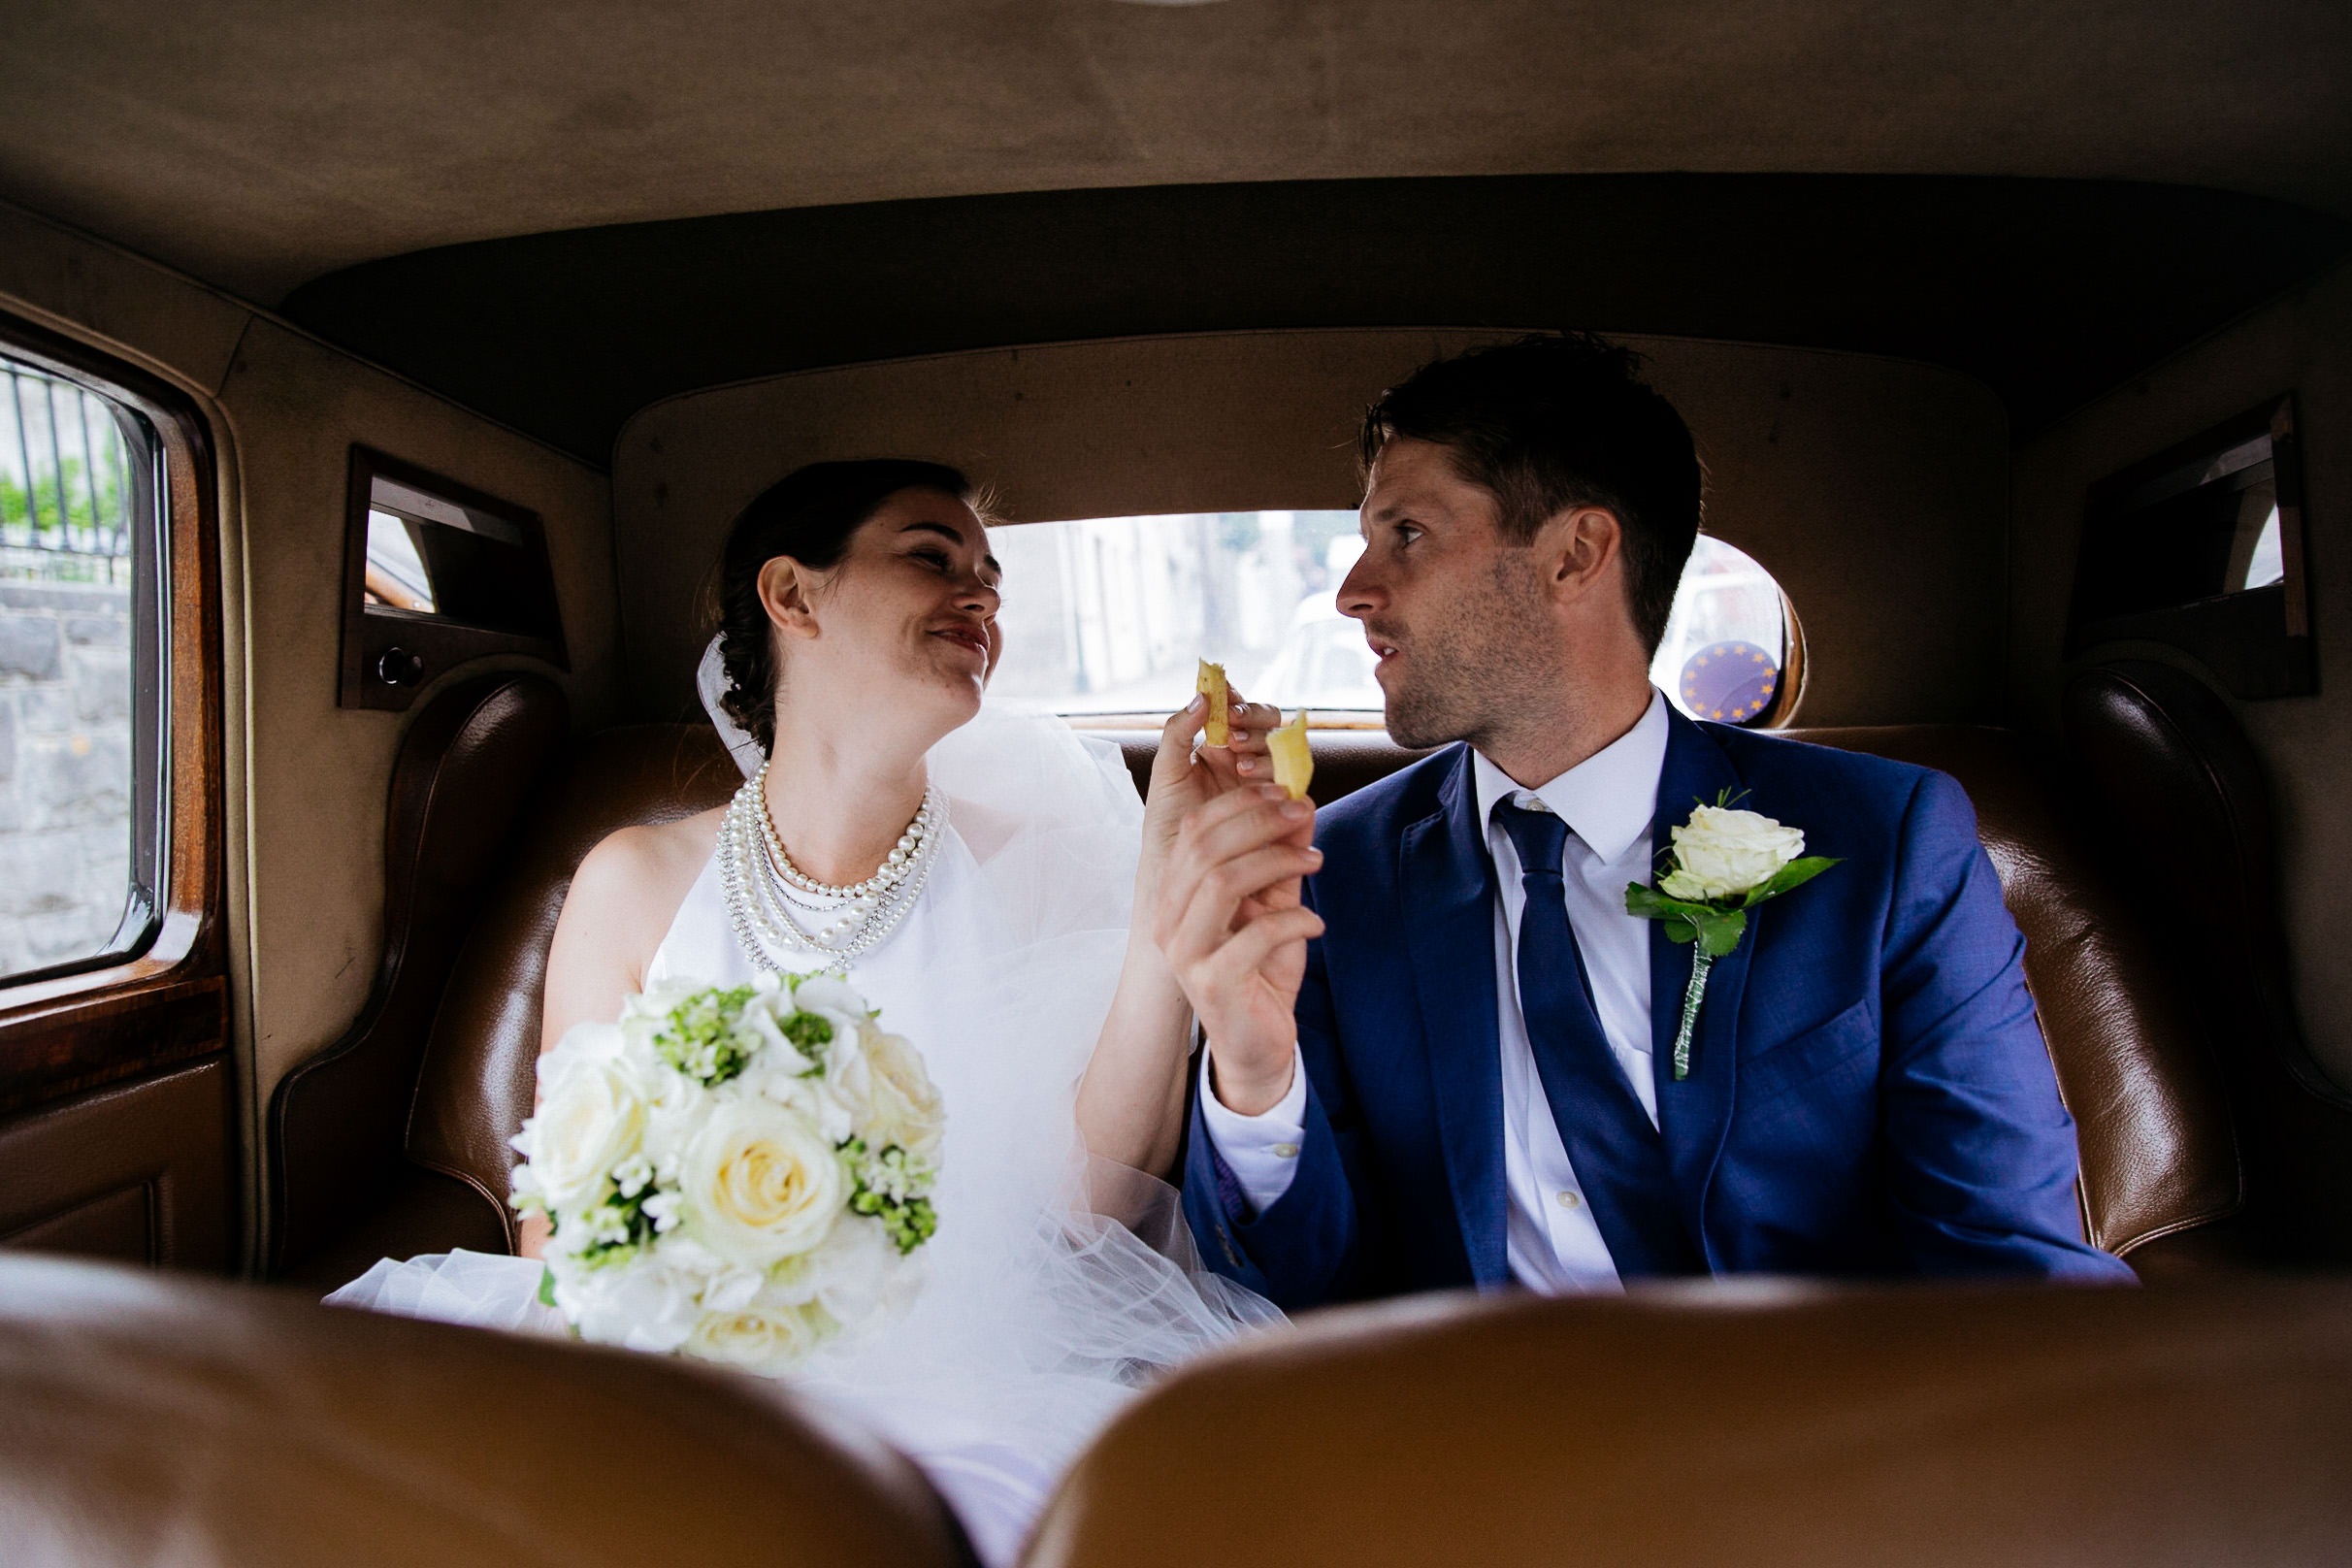 clairebyrnephotography-fun-wedding-photographer-ireland-creative-165.jpg